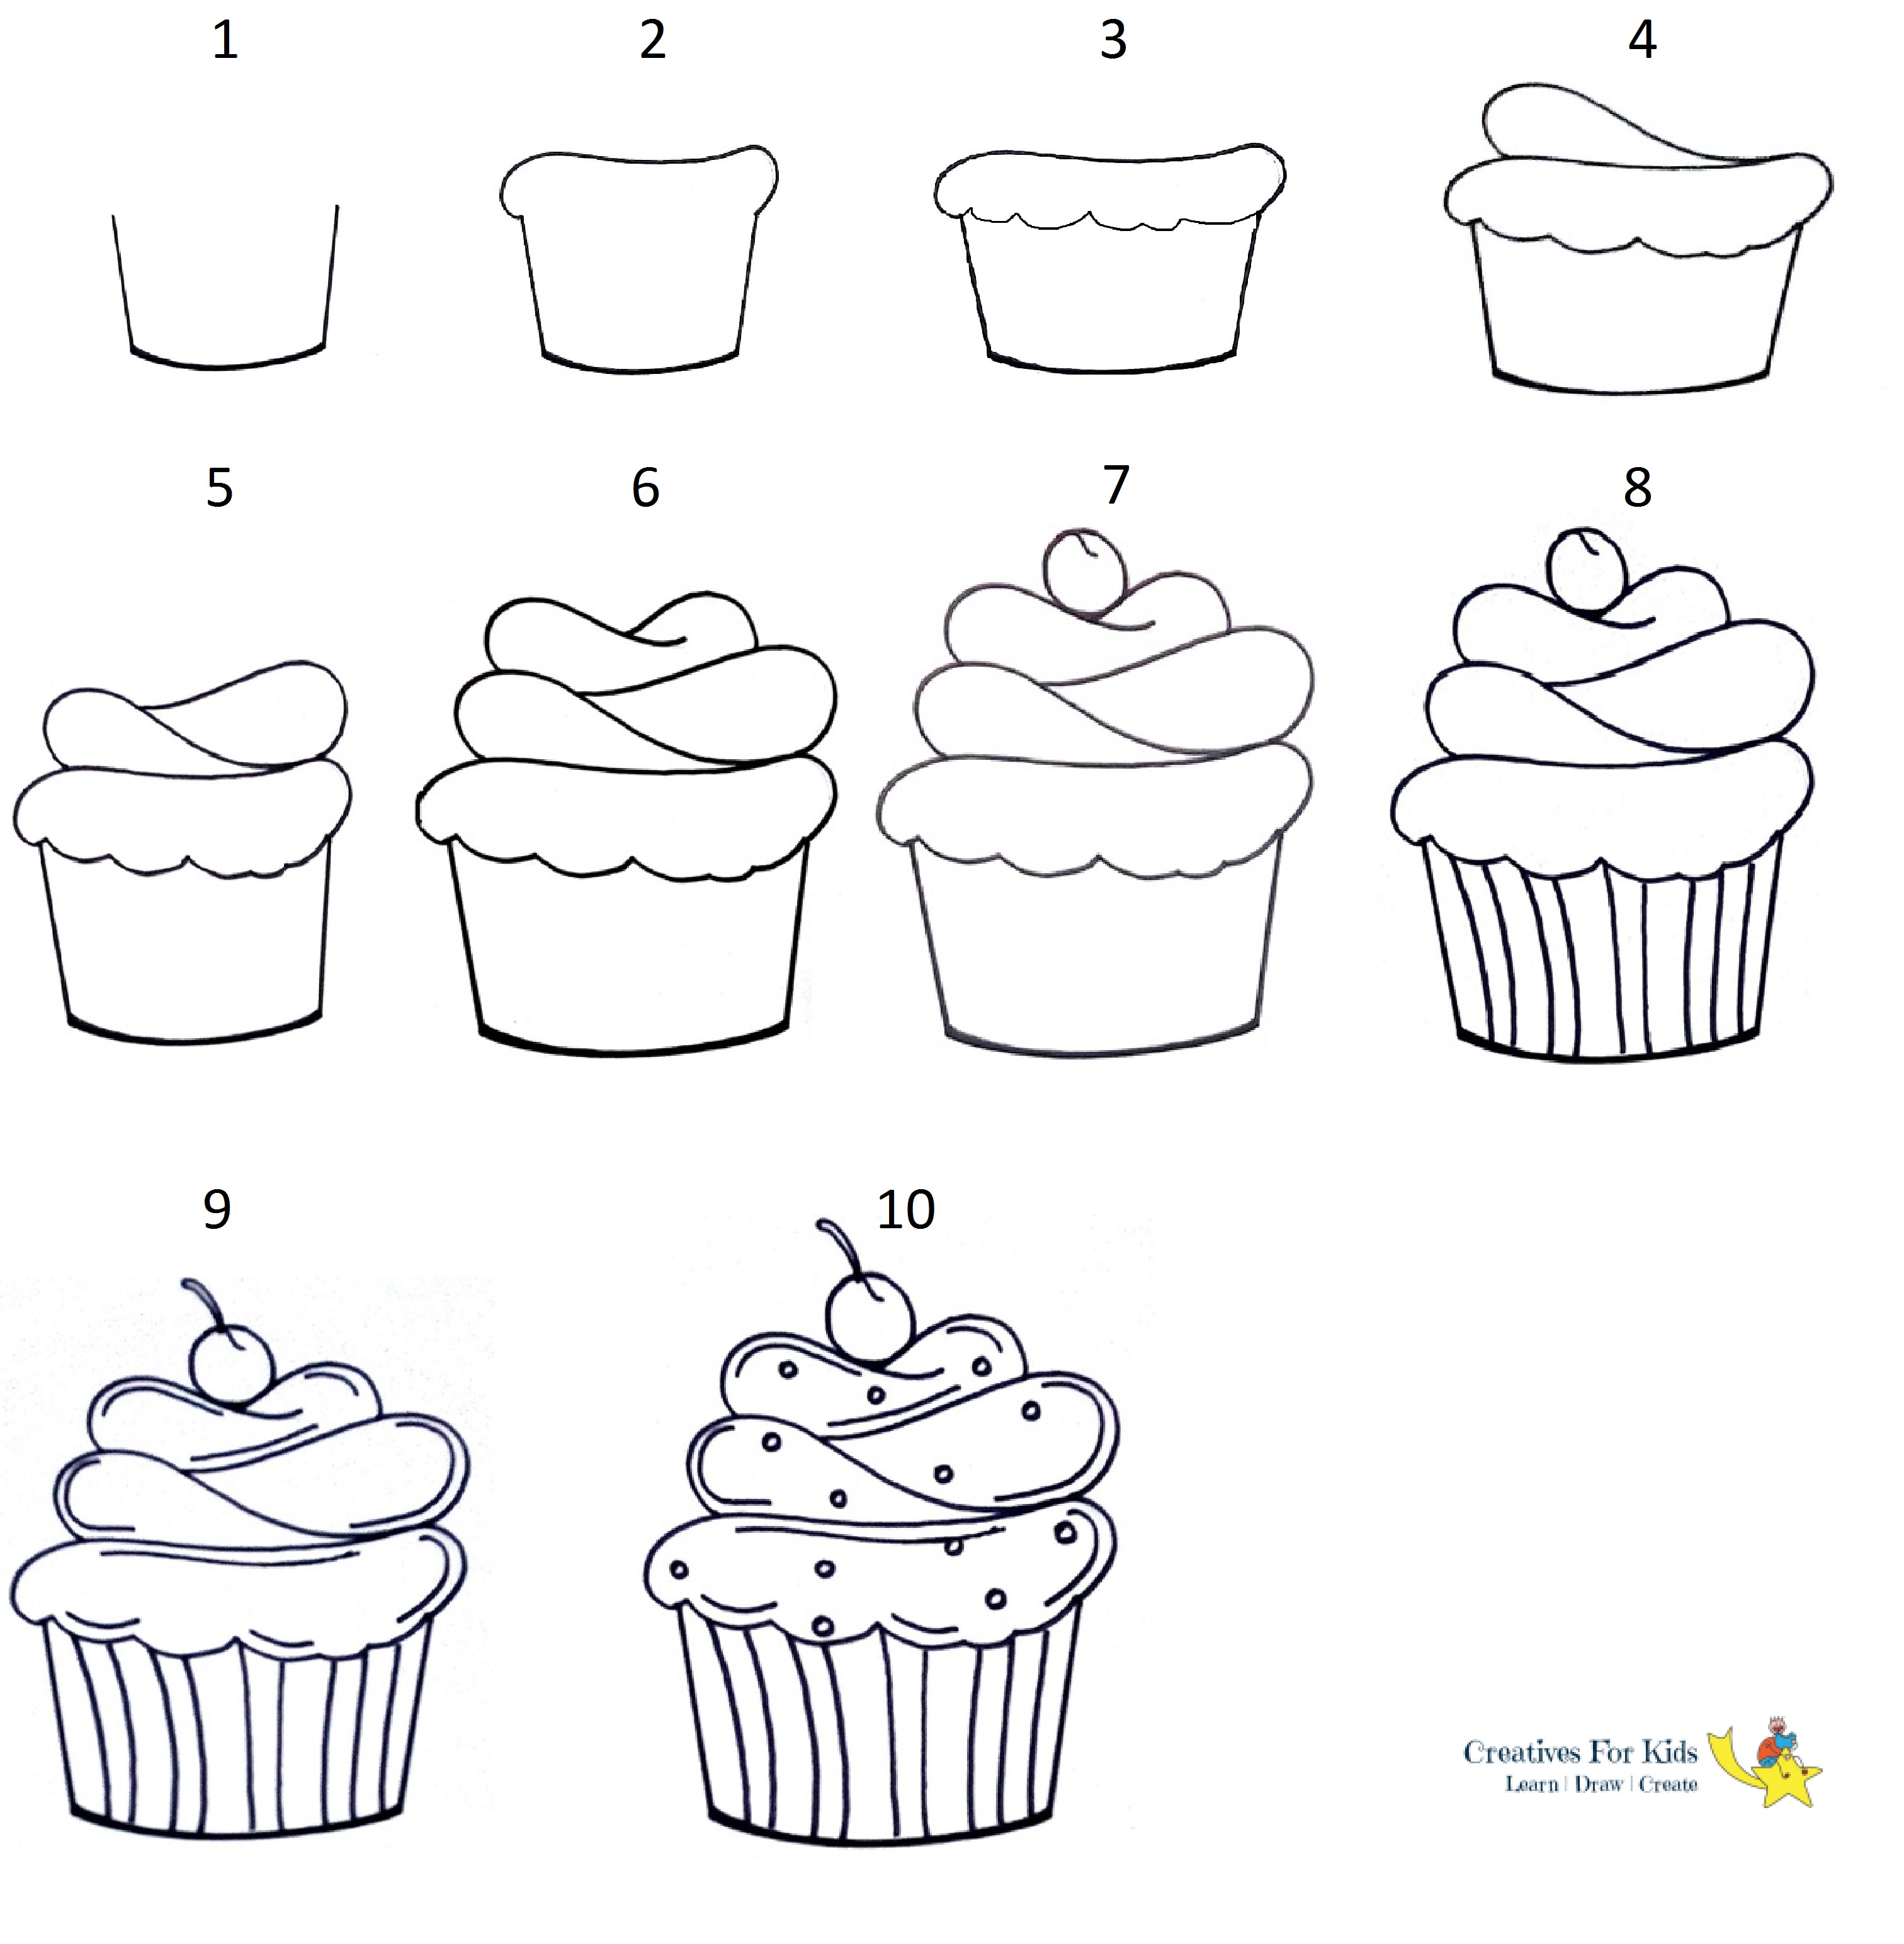 Pictures Of Cupcakes To Draw